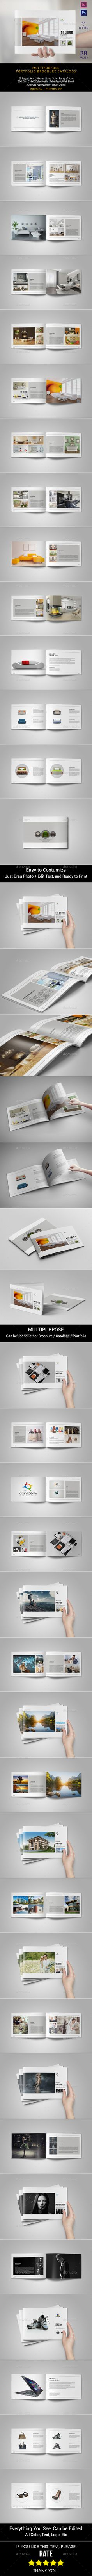 Live Preview On ISSUU Multipurpose Catalogs / Brochure / Portfolio Template This is 28 page minimal brochure template is for desig